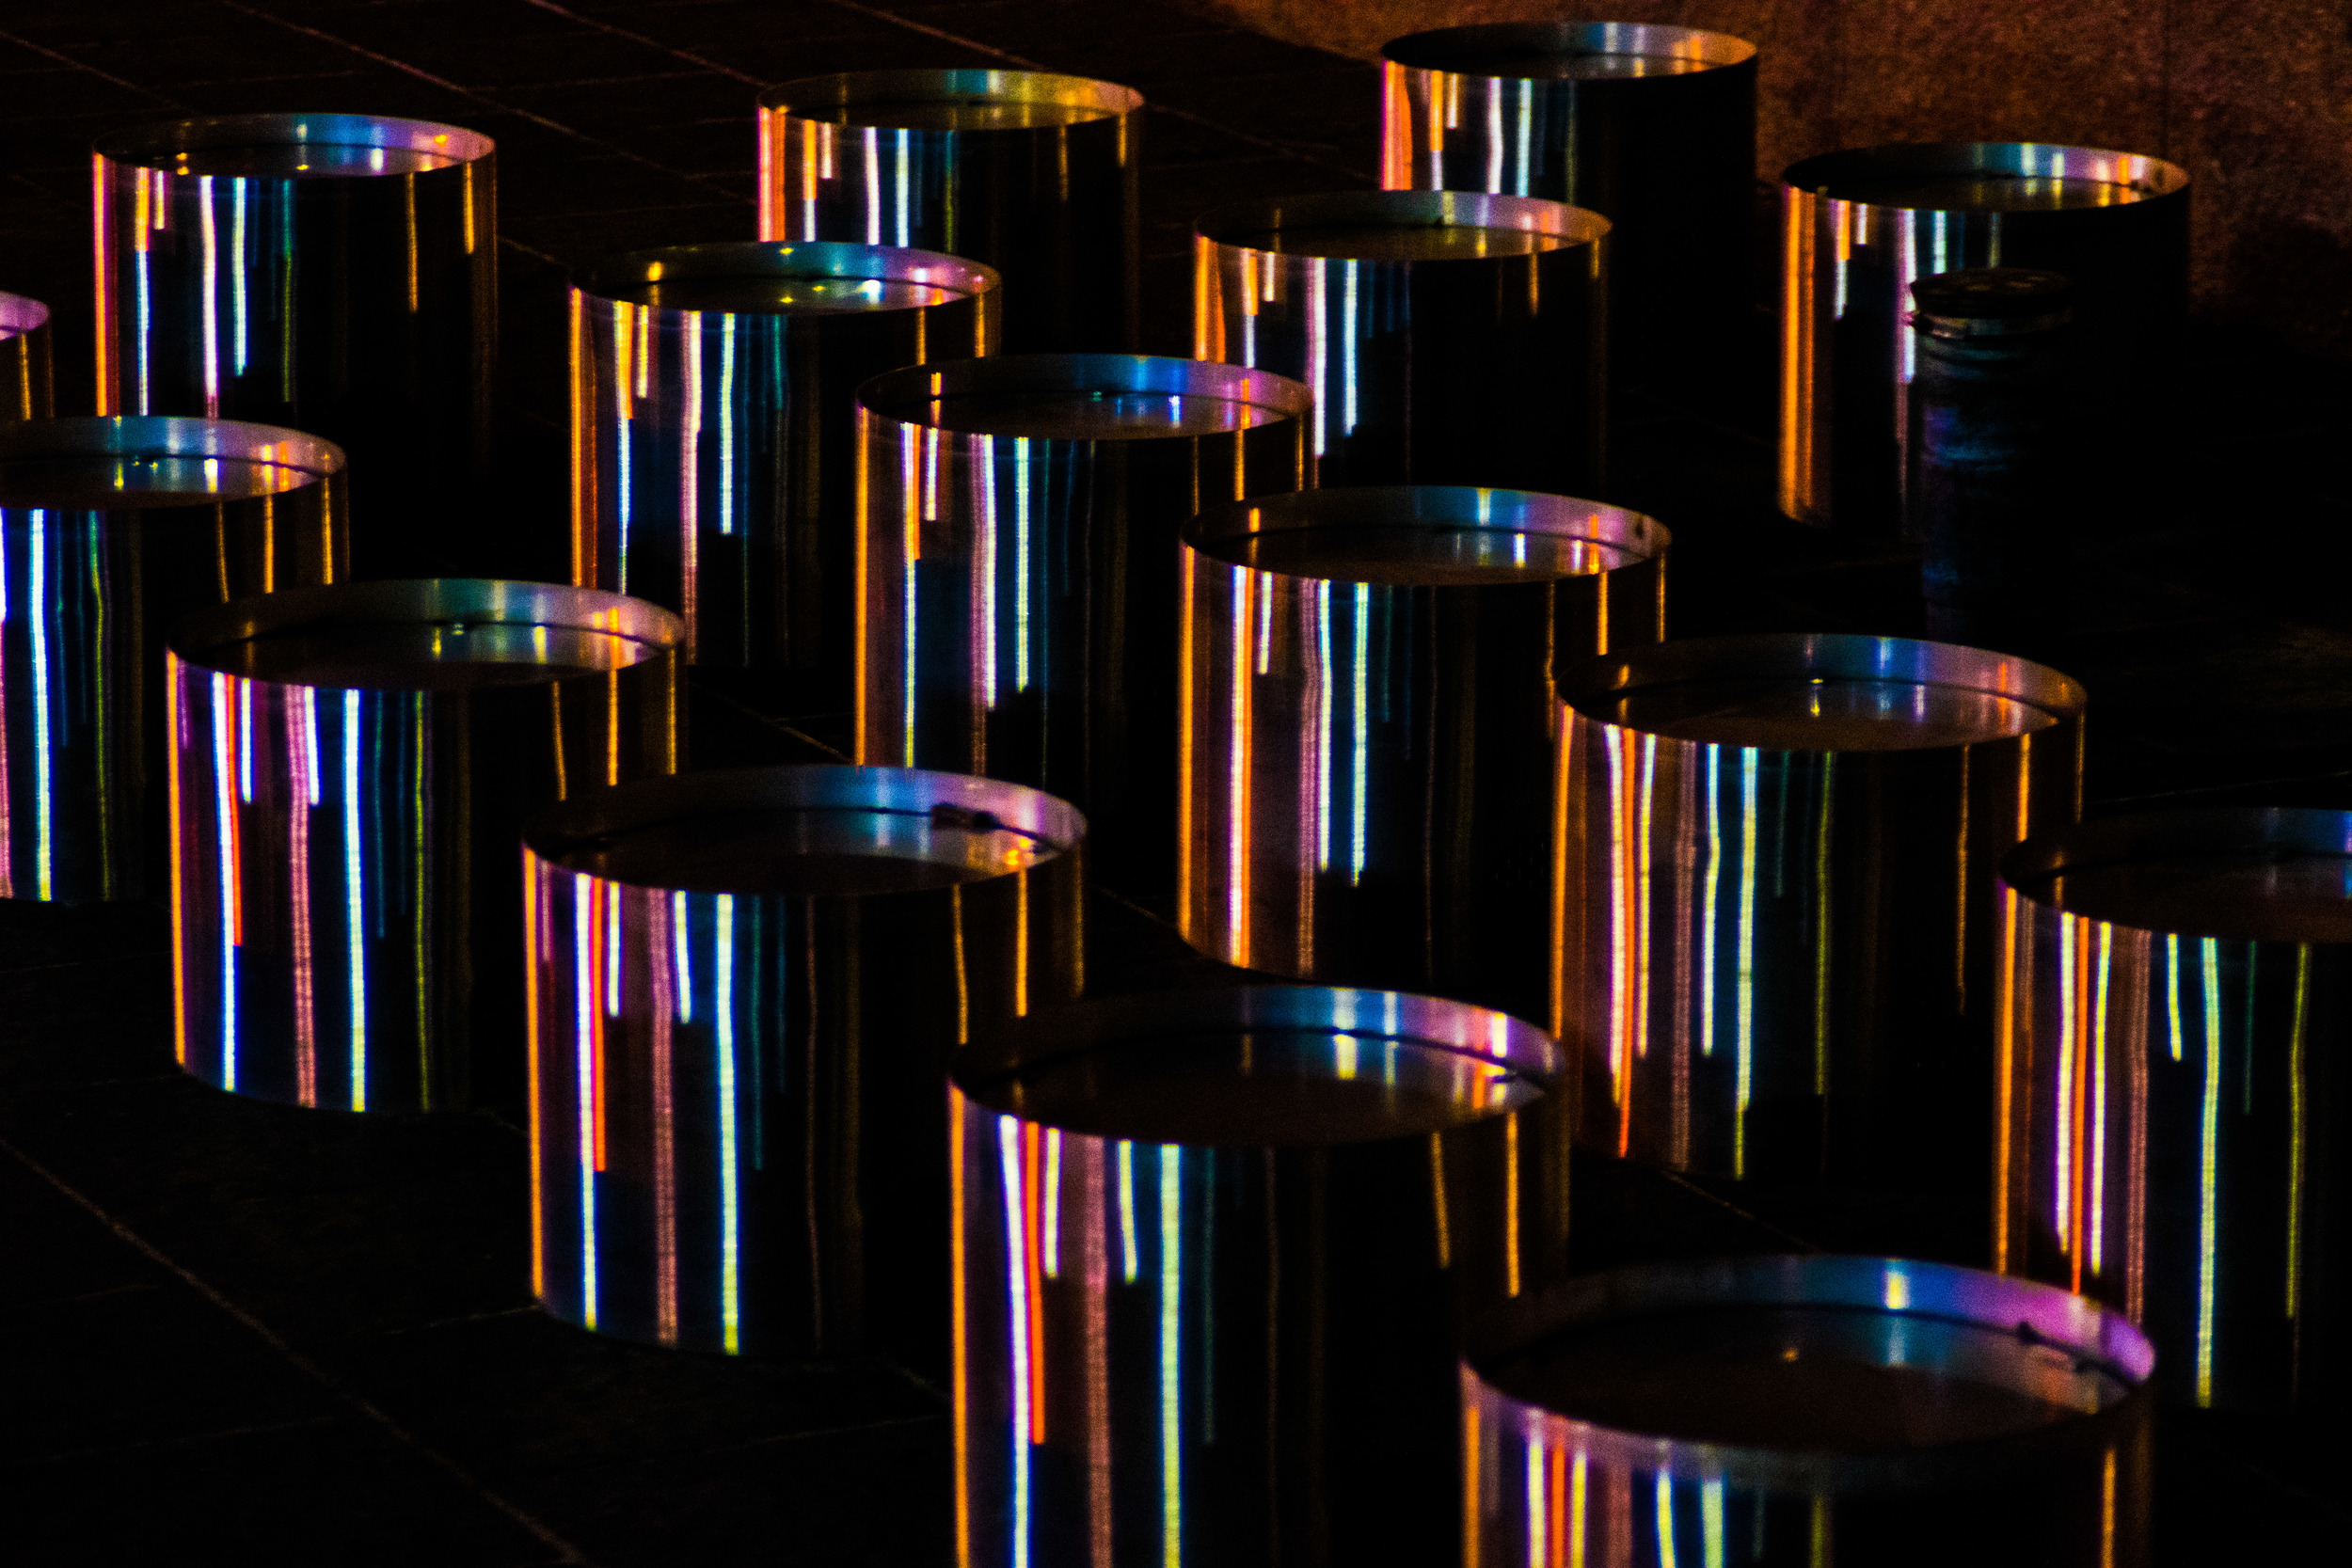 Light Cans